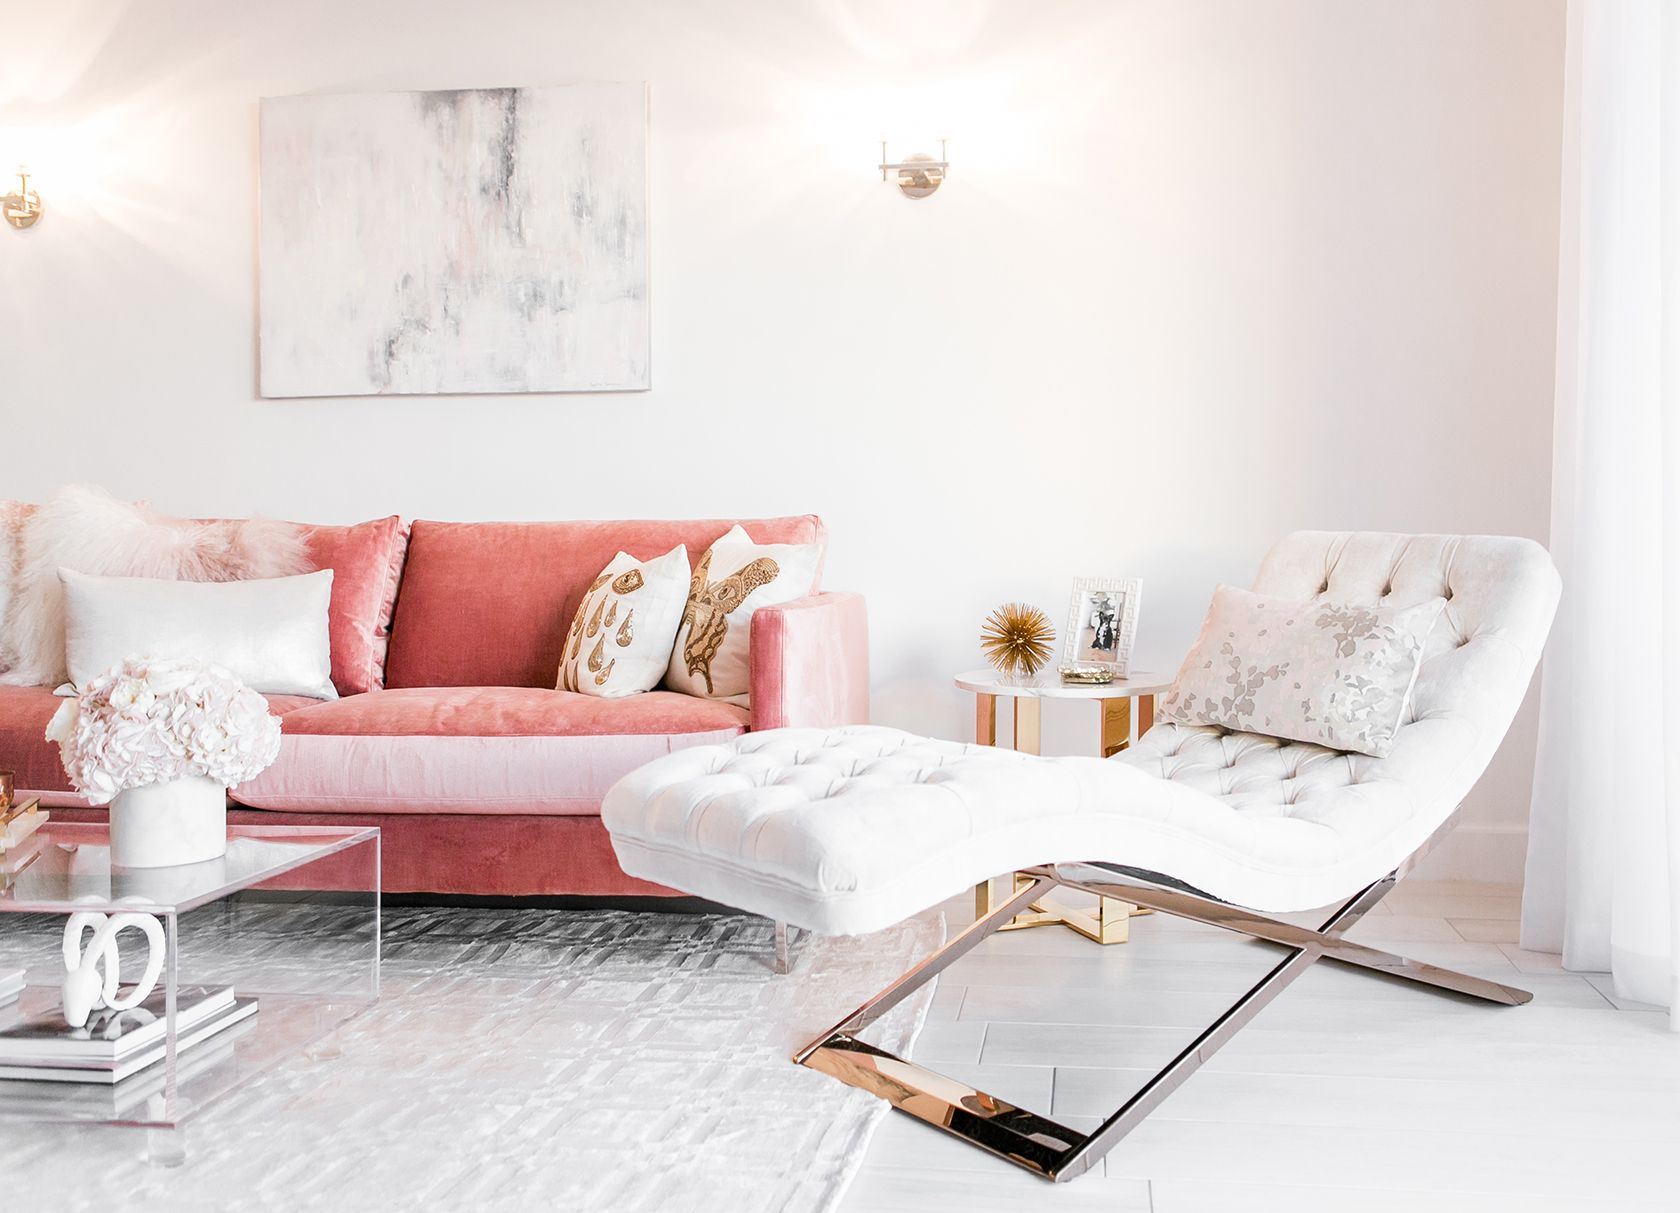 Blush Living Room Decor | Pinterest | Pink sofa, Chaise lounges and ...